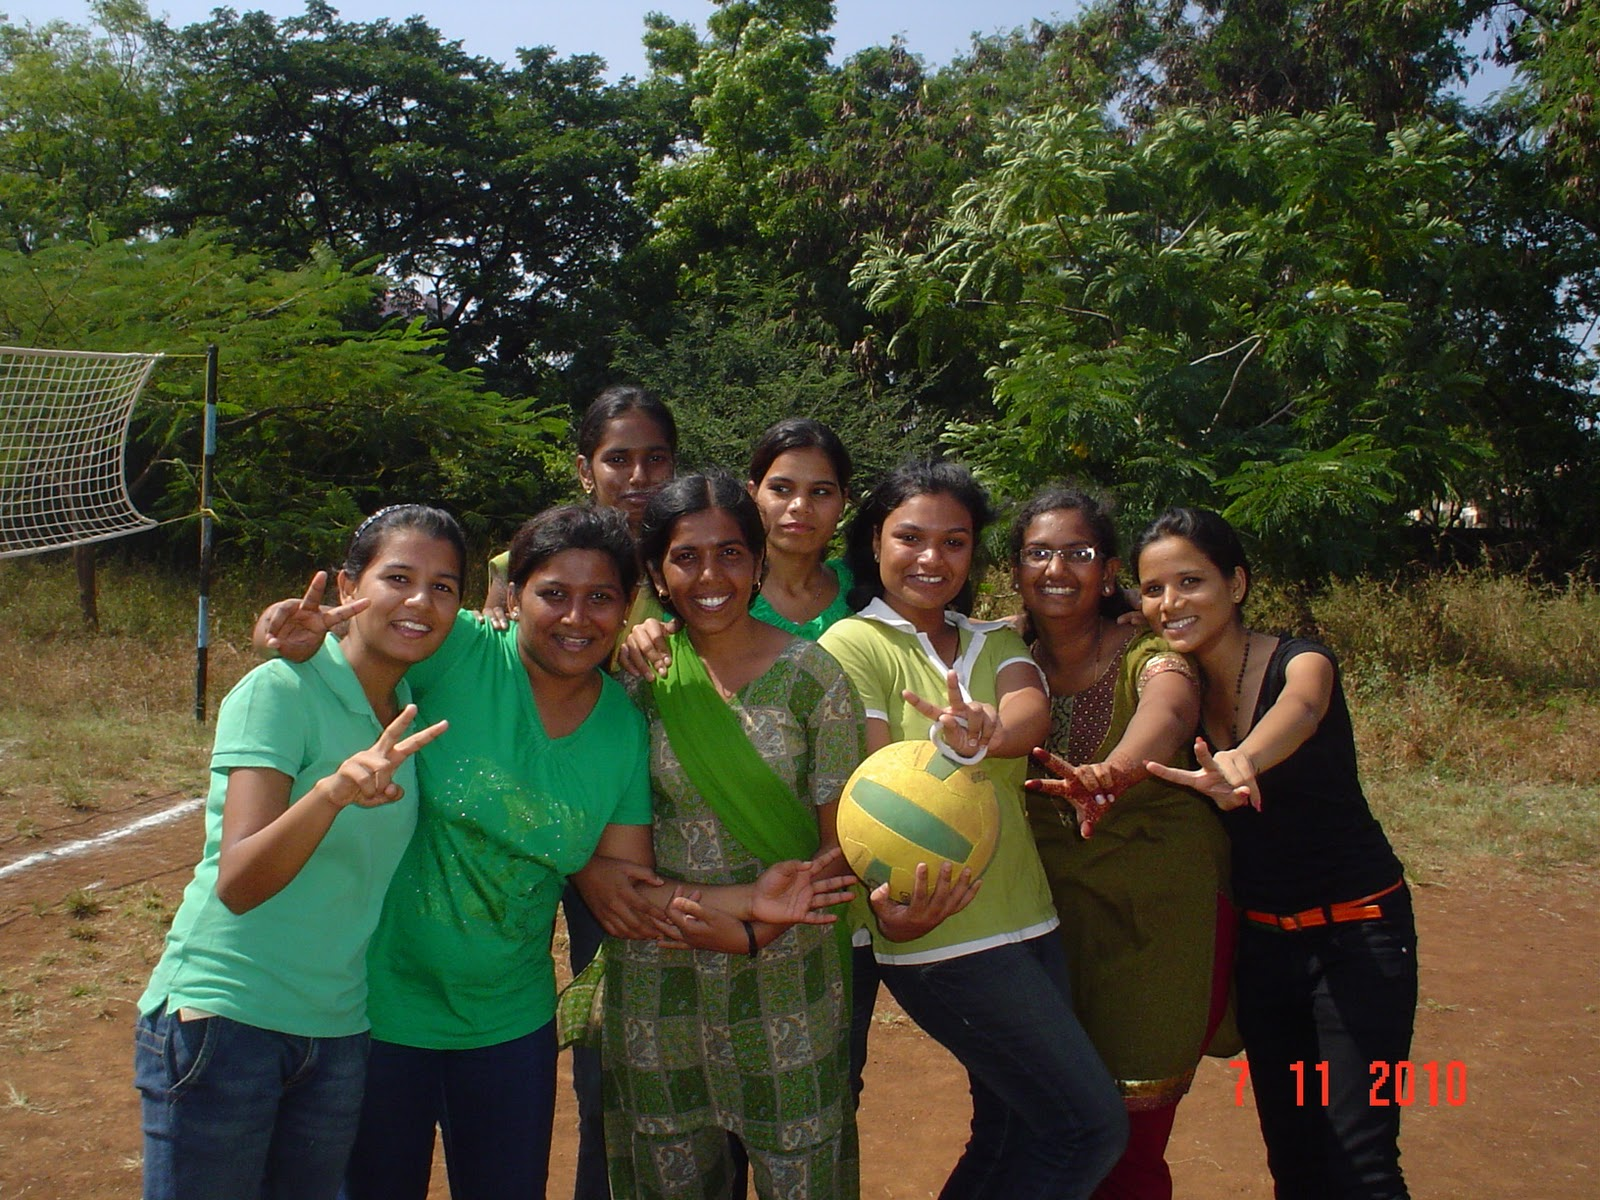 nashik girls Thousands of verified girls at kozhikode is now looking for singles to match, friendship and date online in kozhikode join now free and start dating with girls at kozhikode.